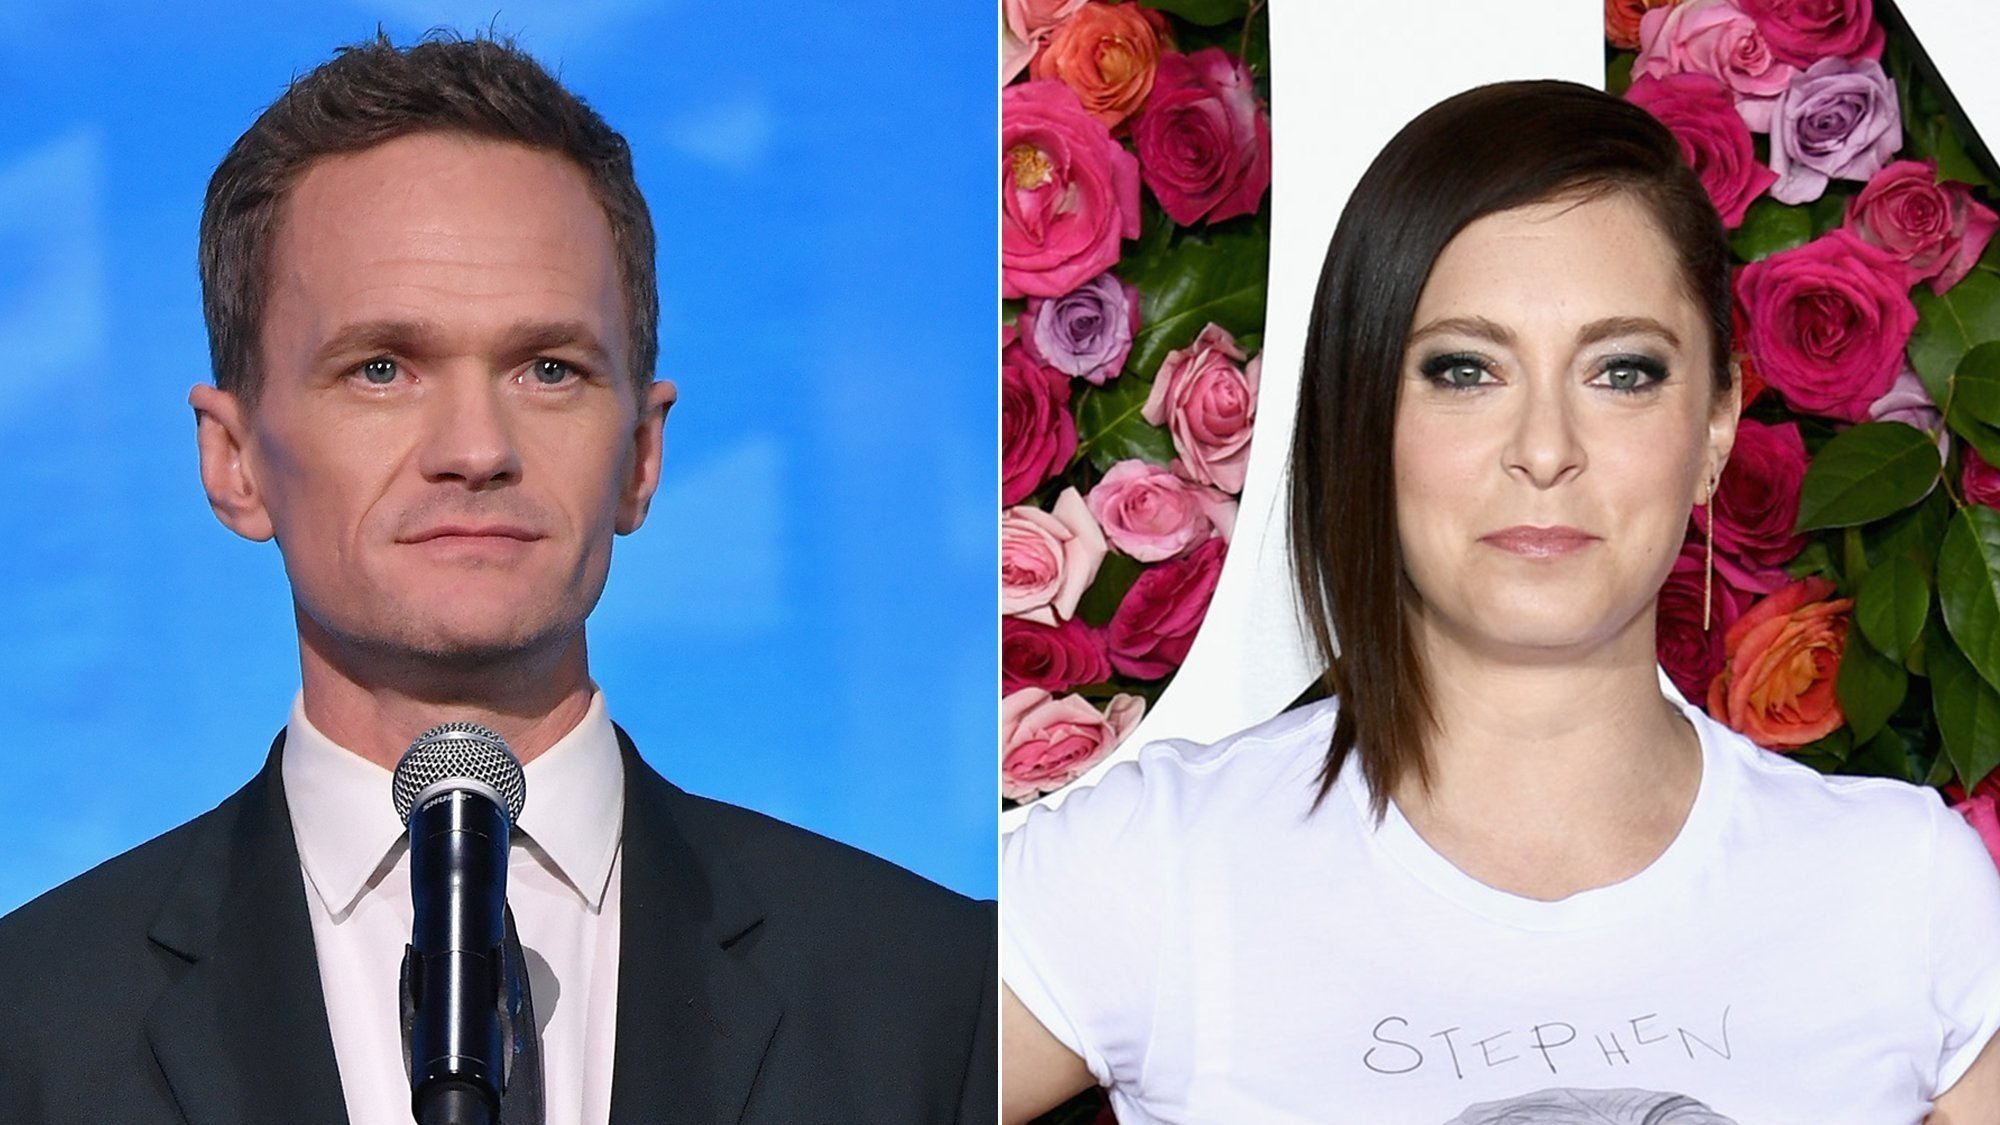 The actor posted an apology to Rachel Bloom after a tweet he wrote about her on-air work during the Tony Awards.